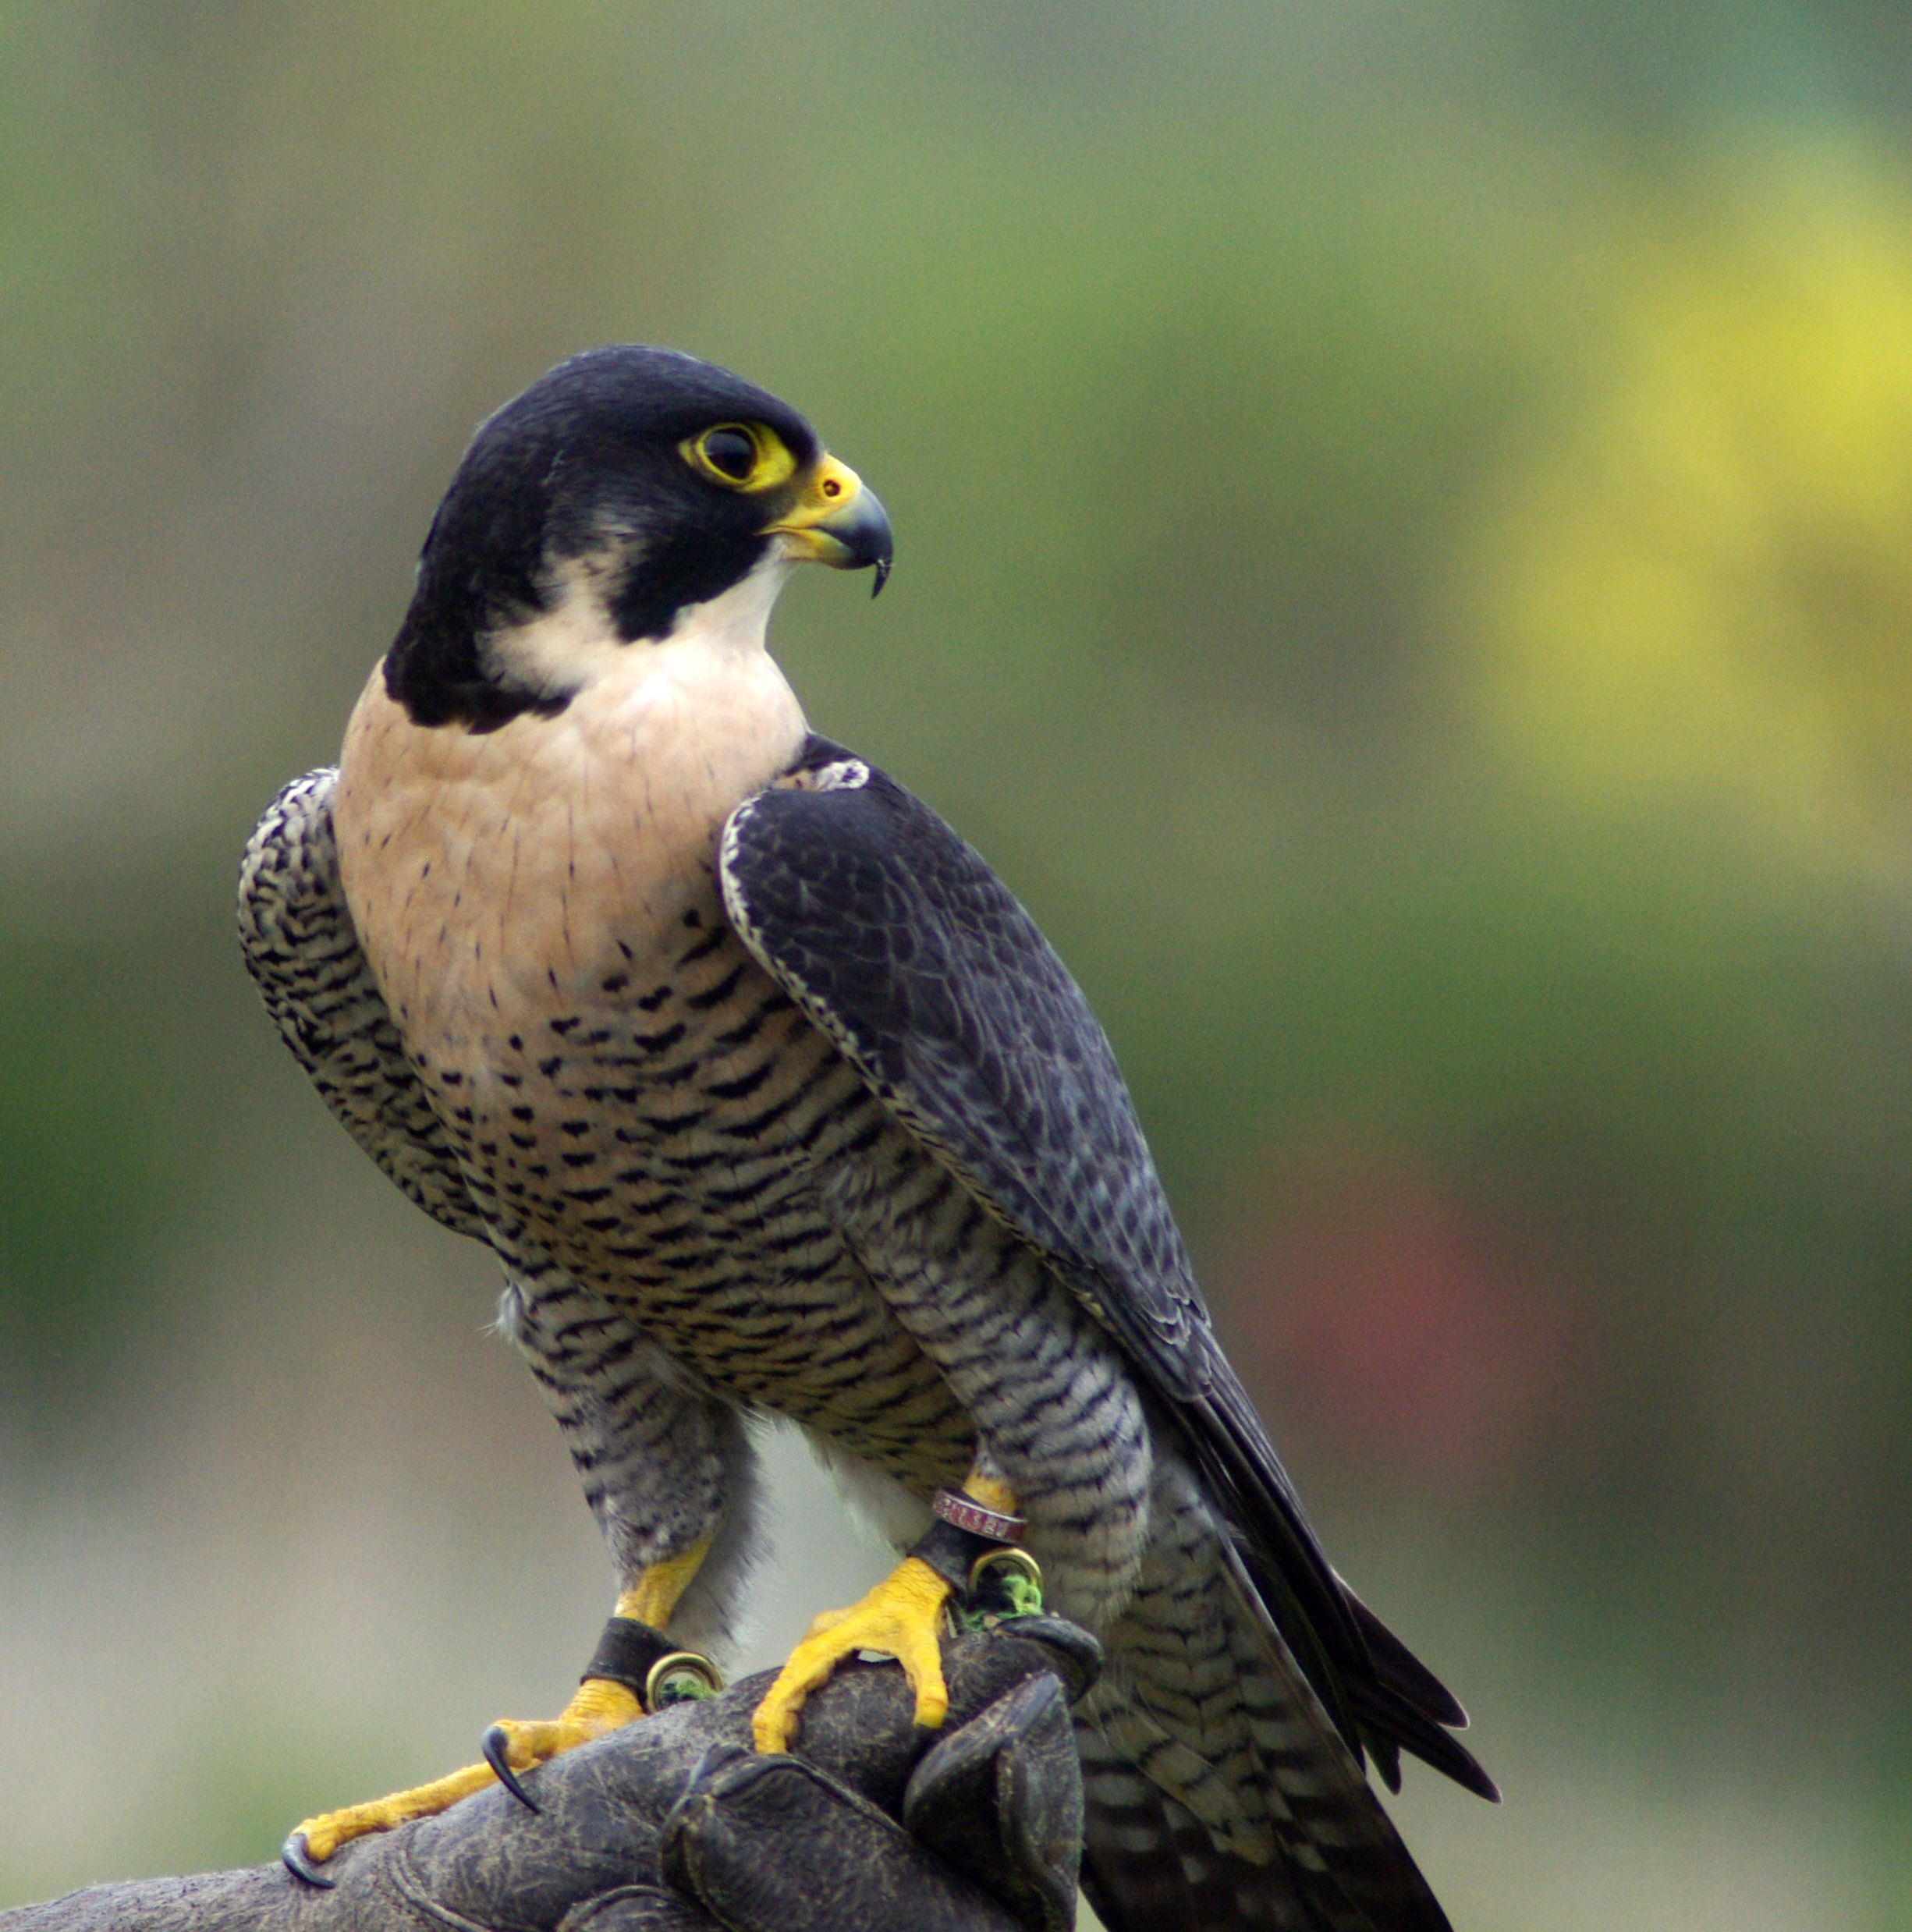 S D Falconry Half Day Falconry Experience Available Egan Our Peregrine Falcon Aves Rapaces Falco Peregrinus Halcon Peregrino